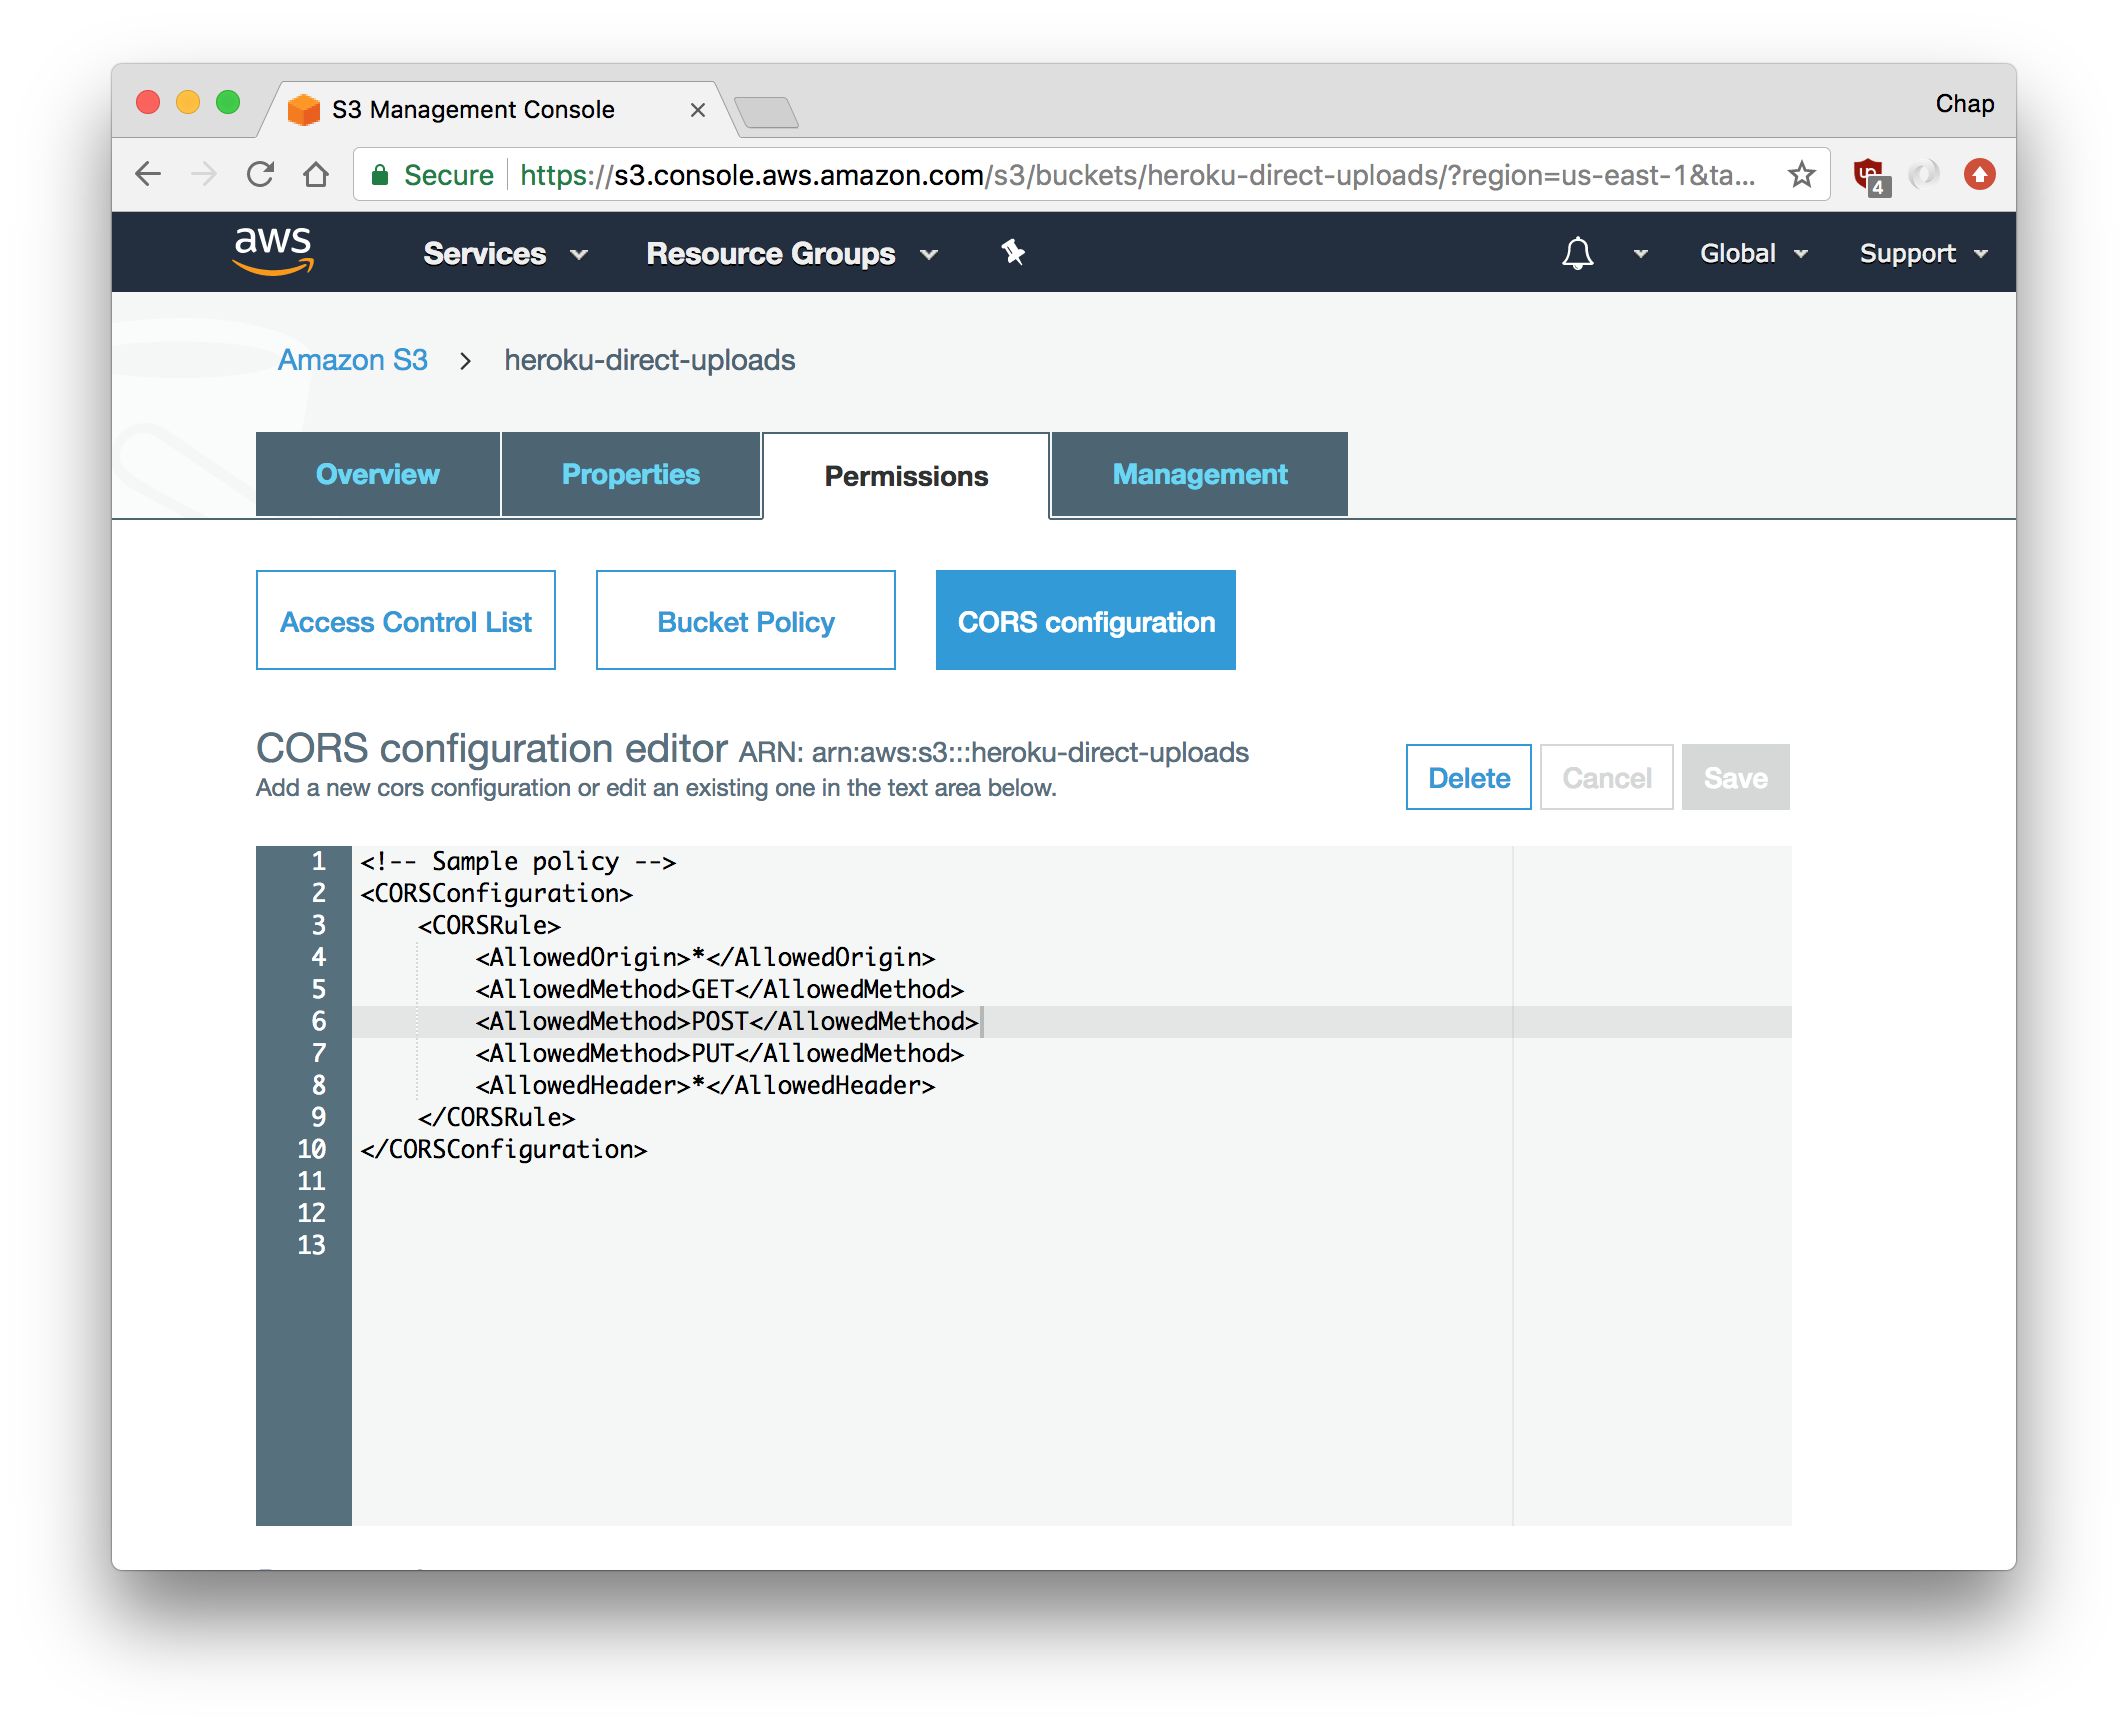 Locating the 'Properties' tab and CORS configuration editor